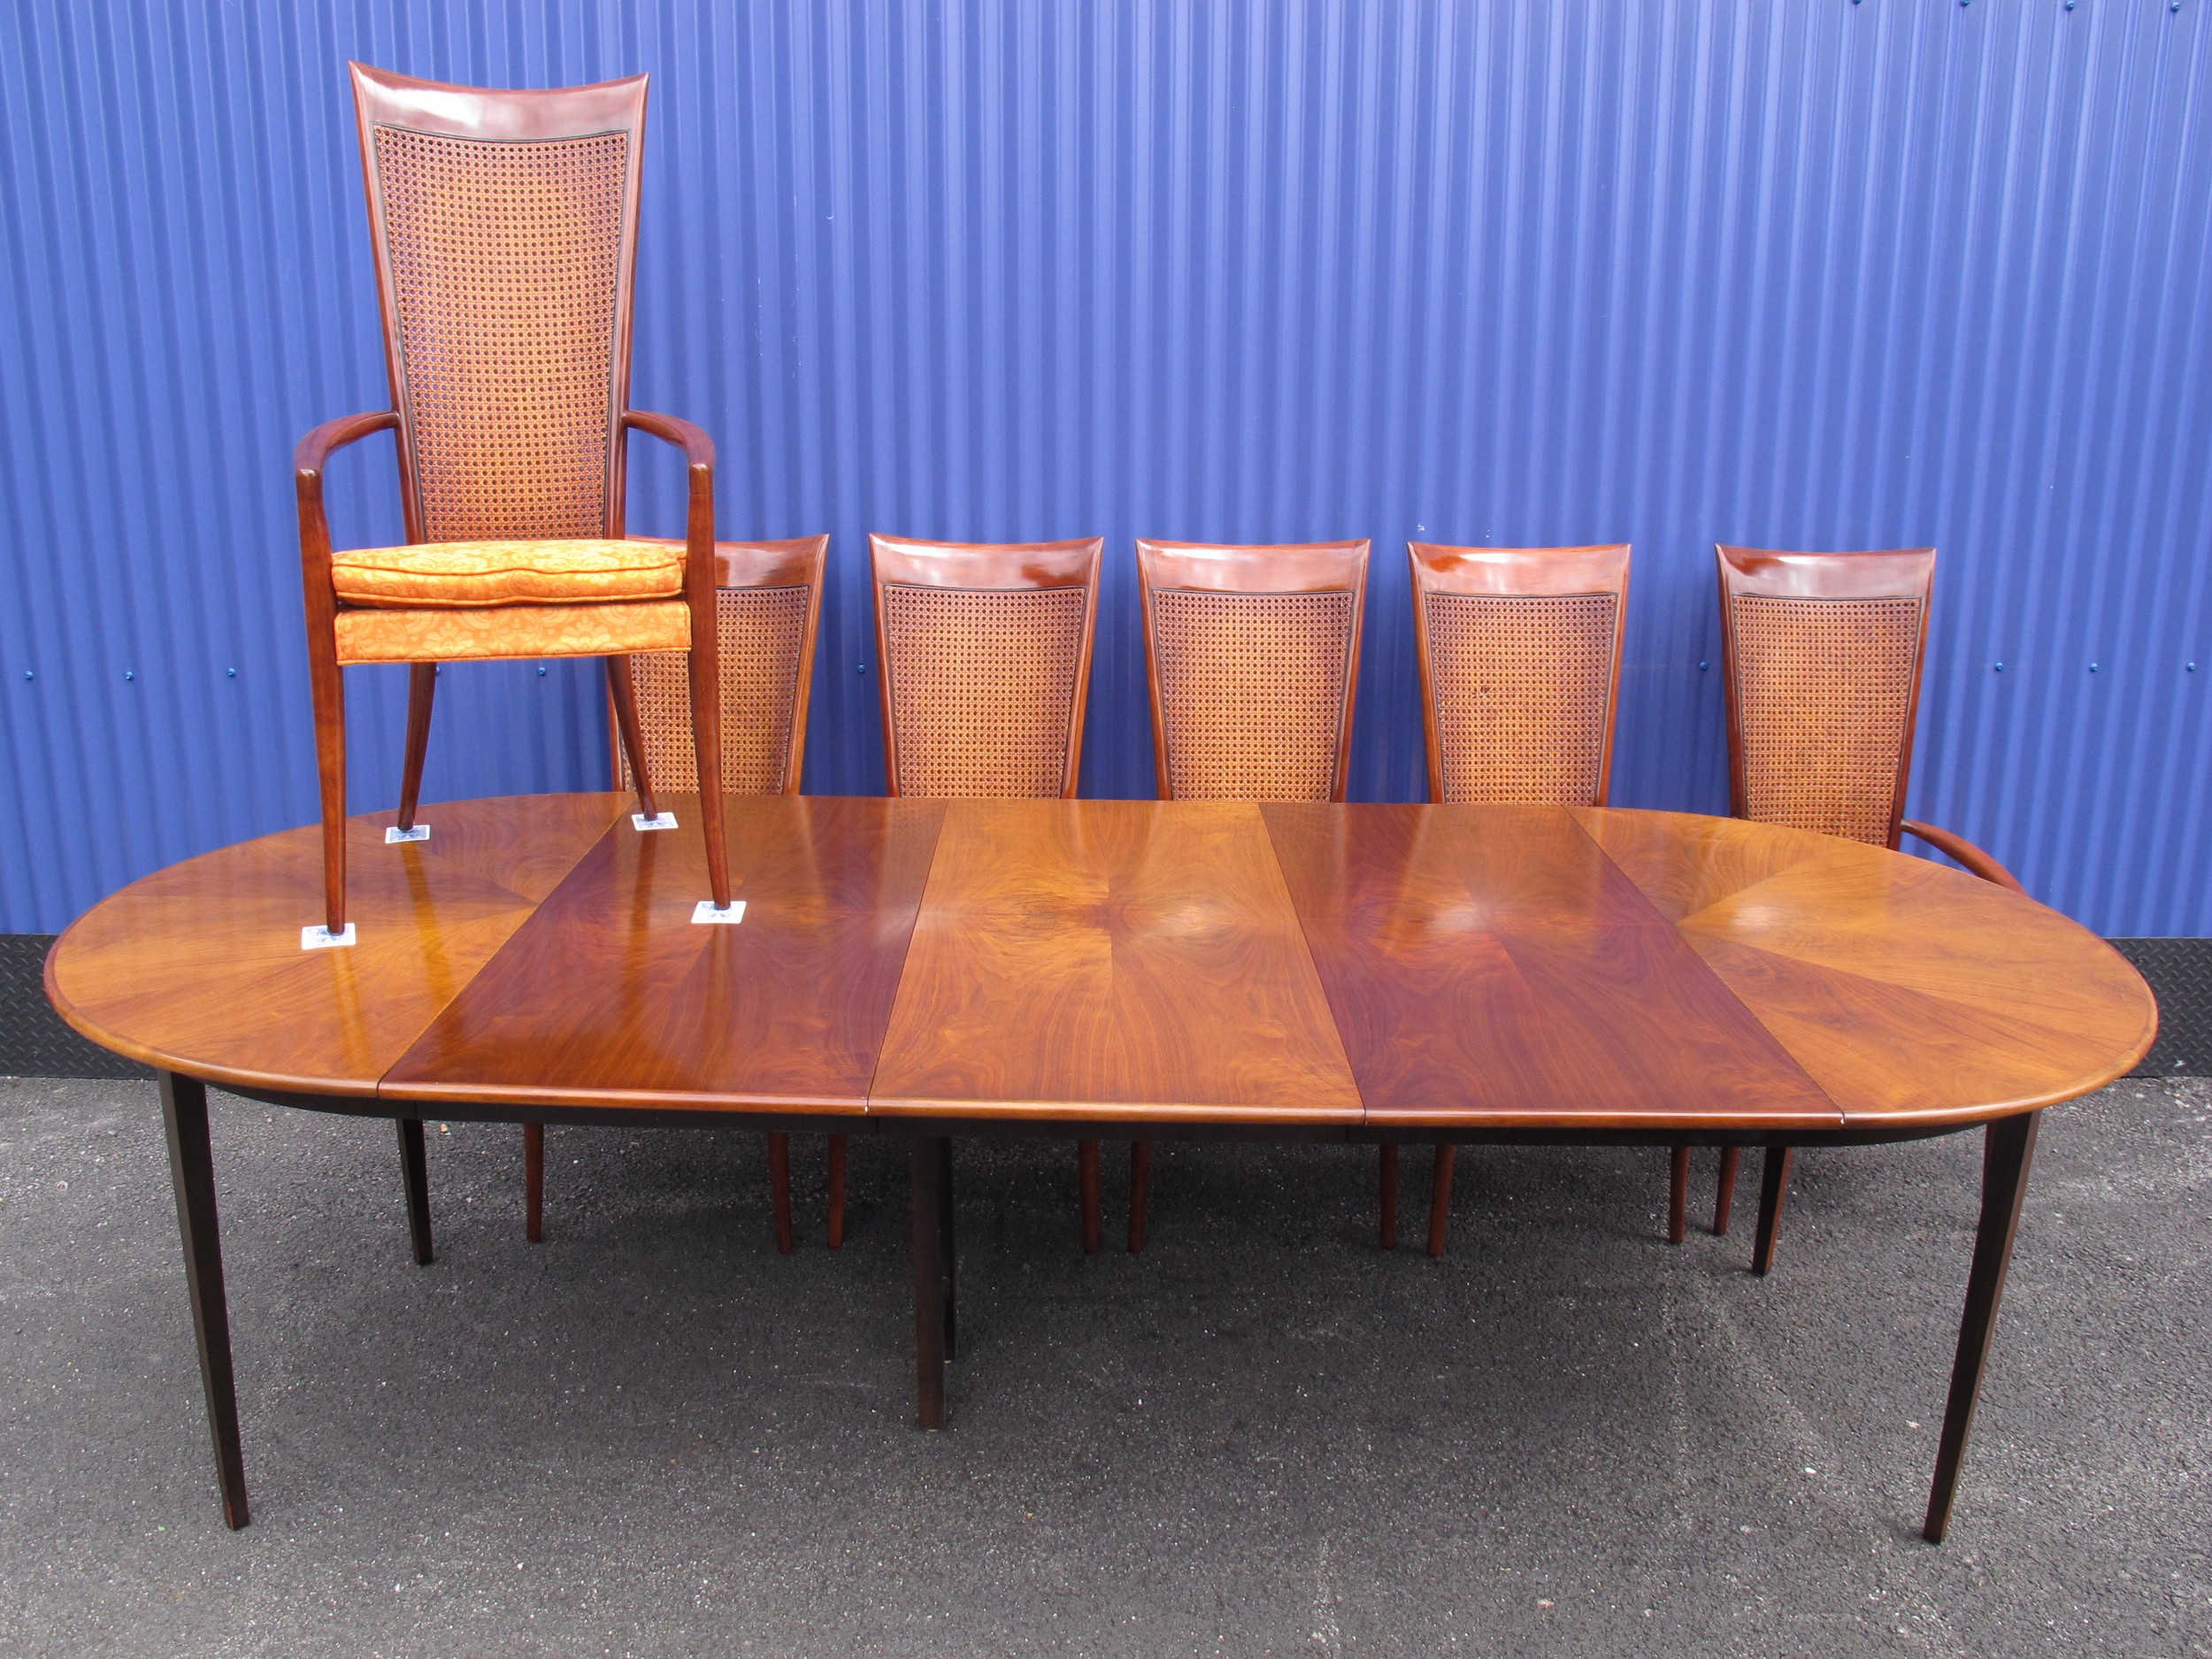 DIRECTIONAL TABLE & CHAIRS ATTRIBUTED TO MILO BAUGHMAN